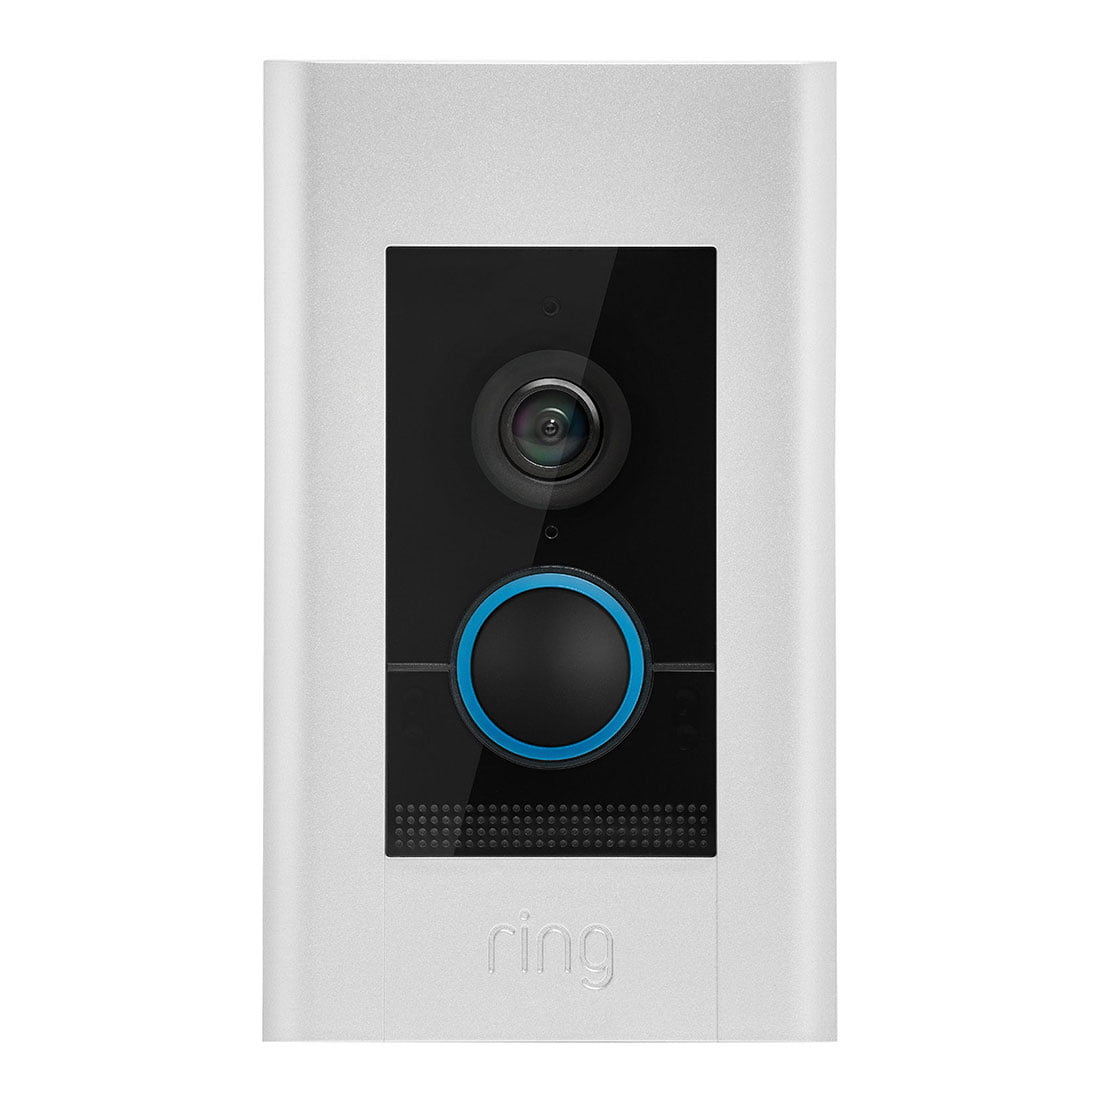 ring doorbell for sale retina rod and cone diagram wi fi video elite poe 1080p flush mt